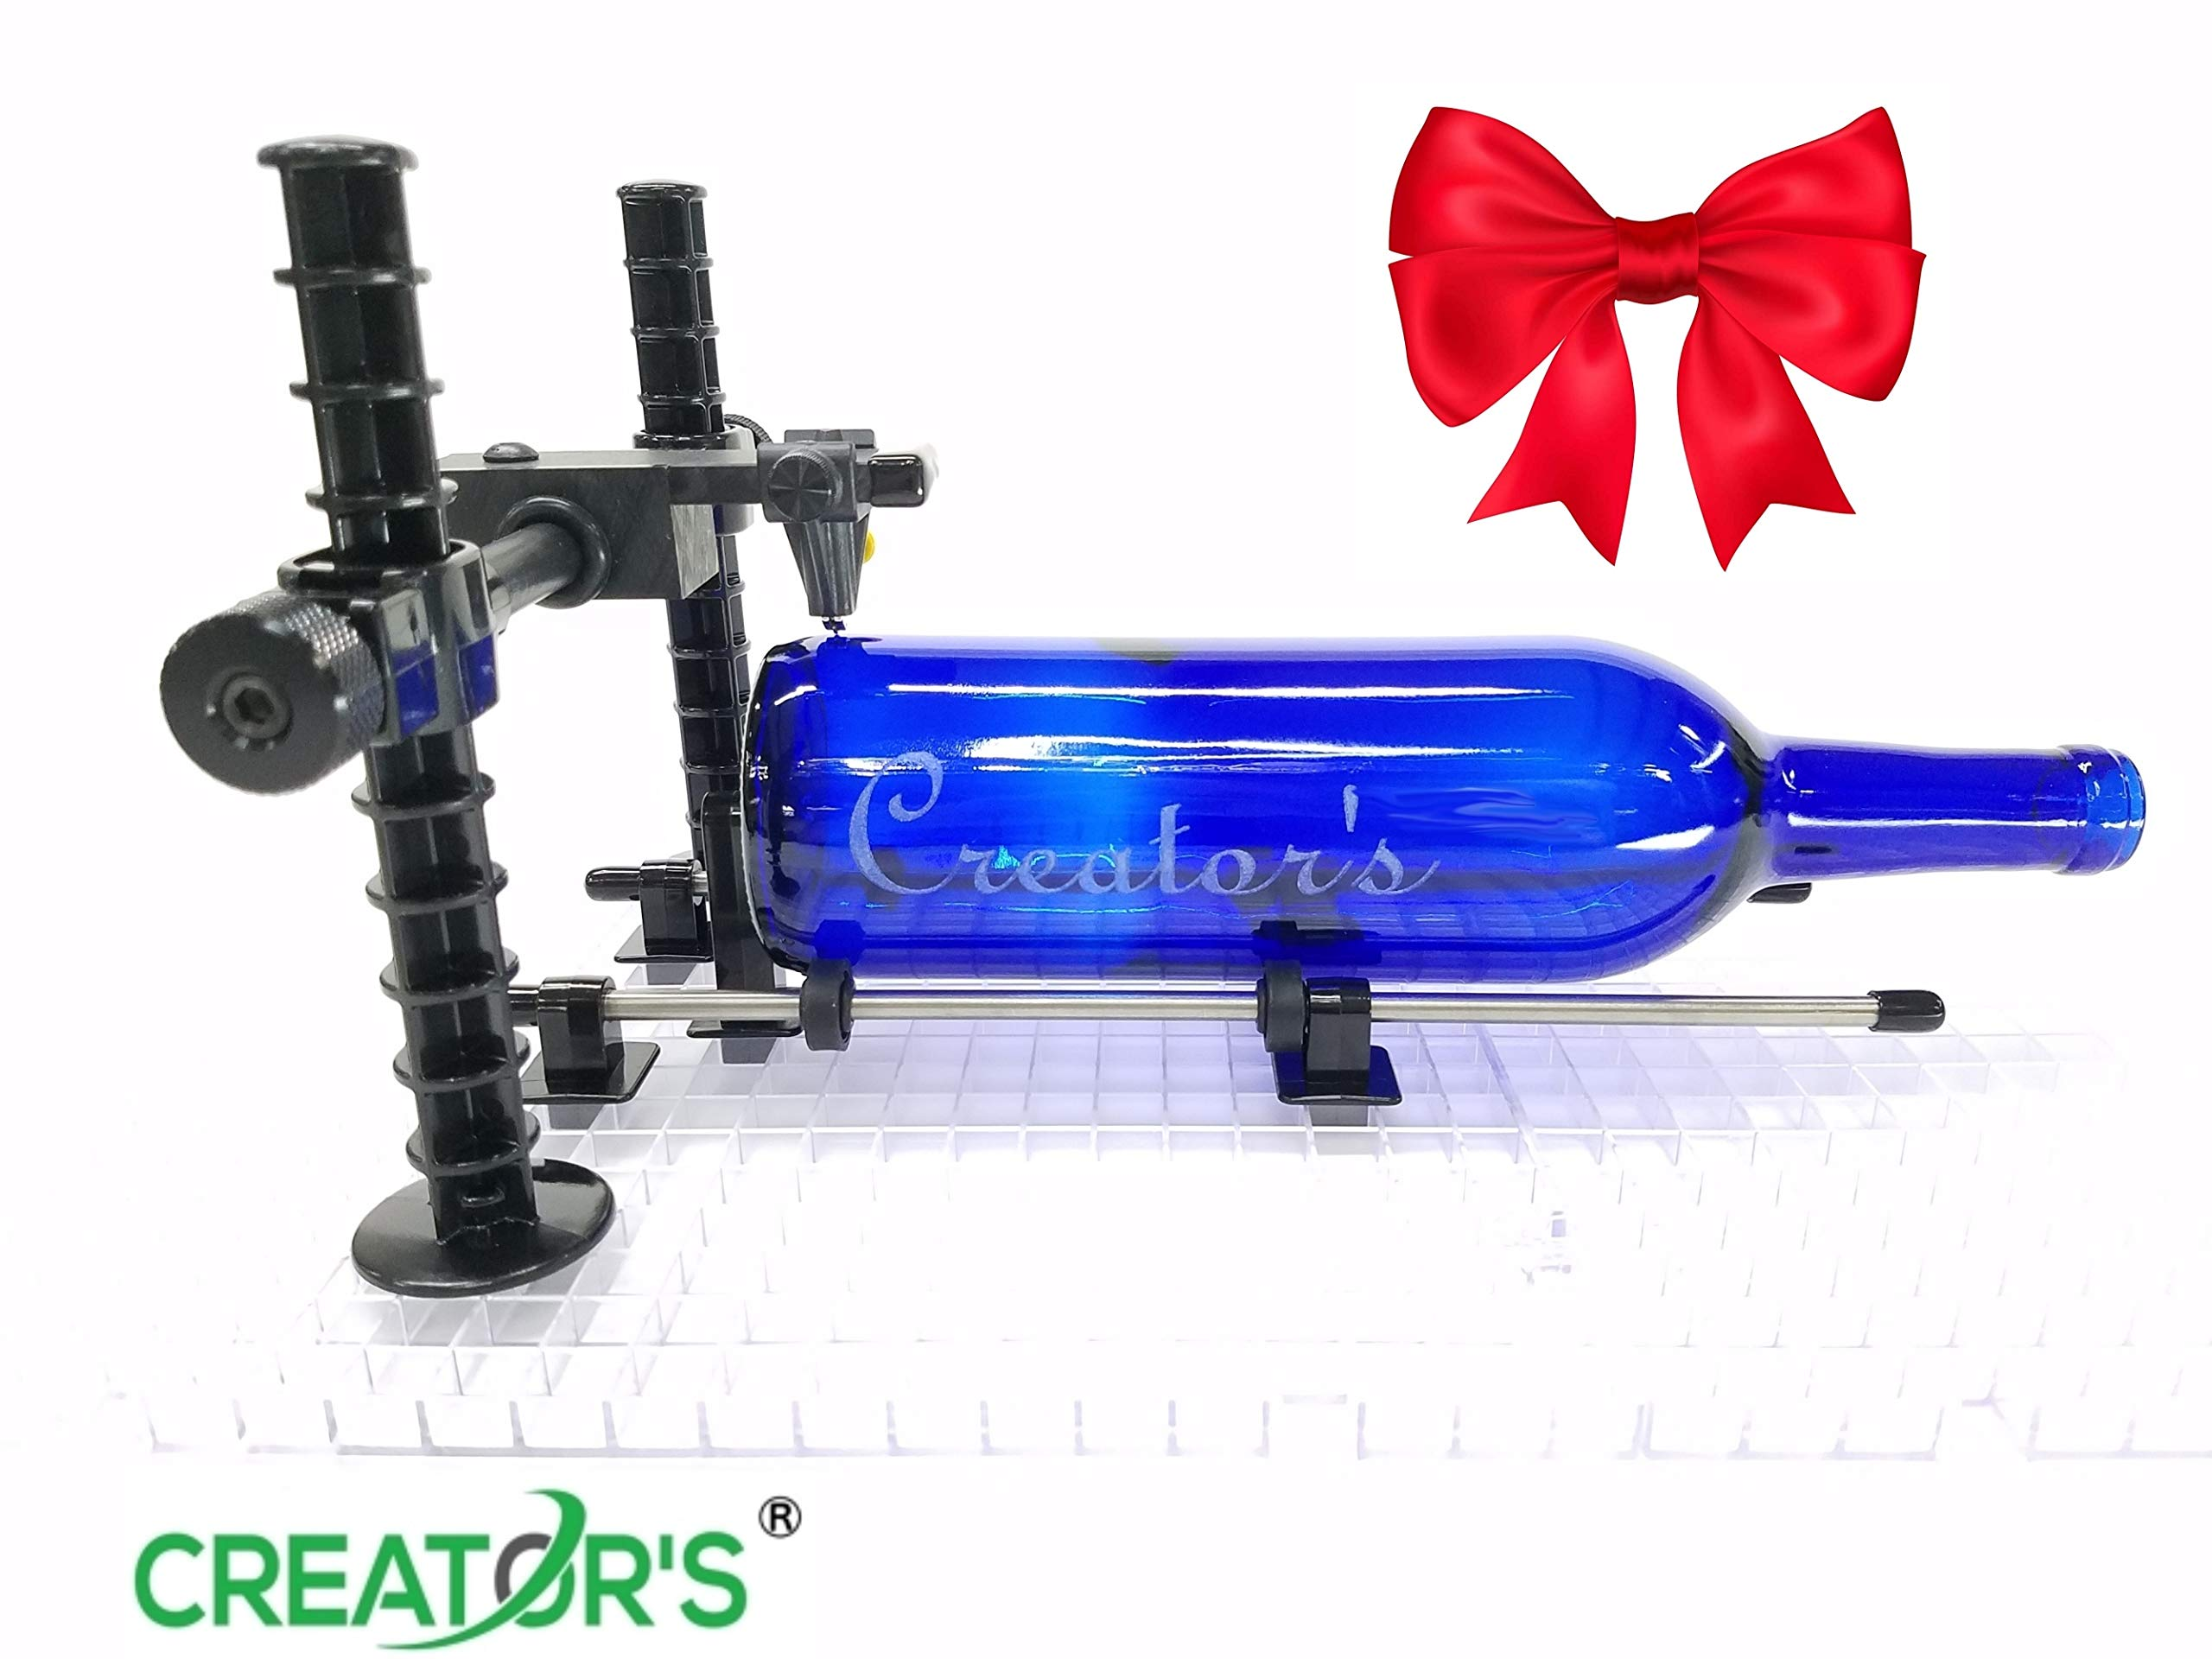 Creator's Over-The-TOP Advanced Artist's Glass Bottle Cutter - Precision Designed Professional Instrument - Cut Beer, Wine Bottles, Bottle Necks, and Neck Contours - Born and Made in The USA by Creator's